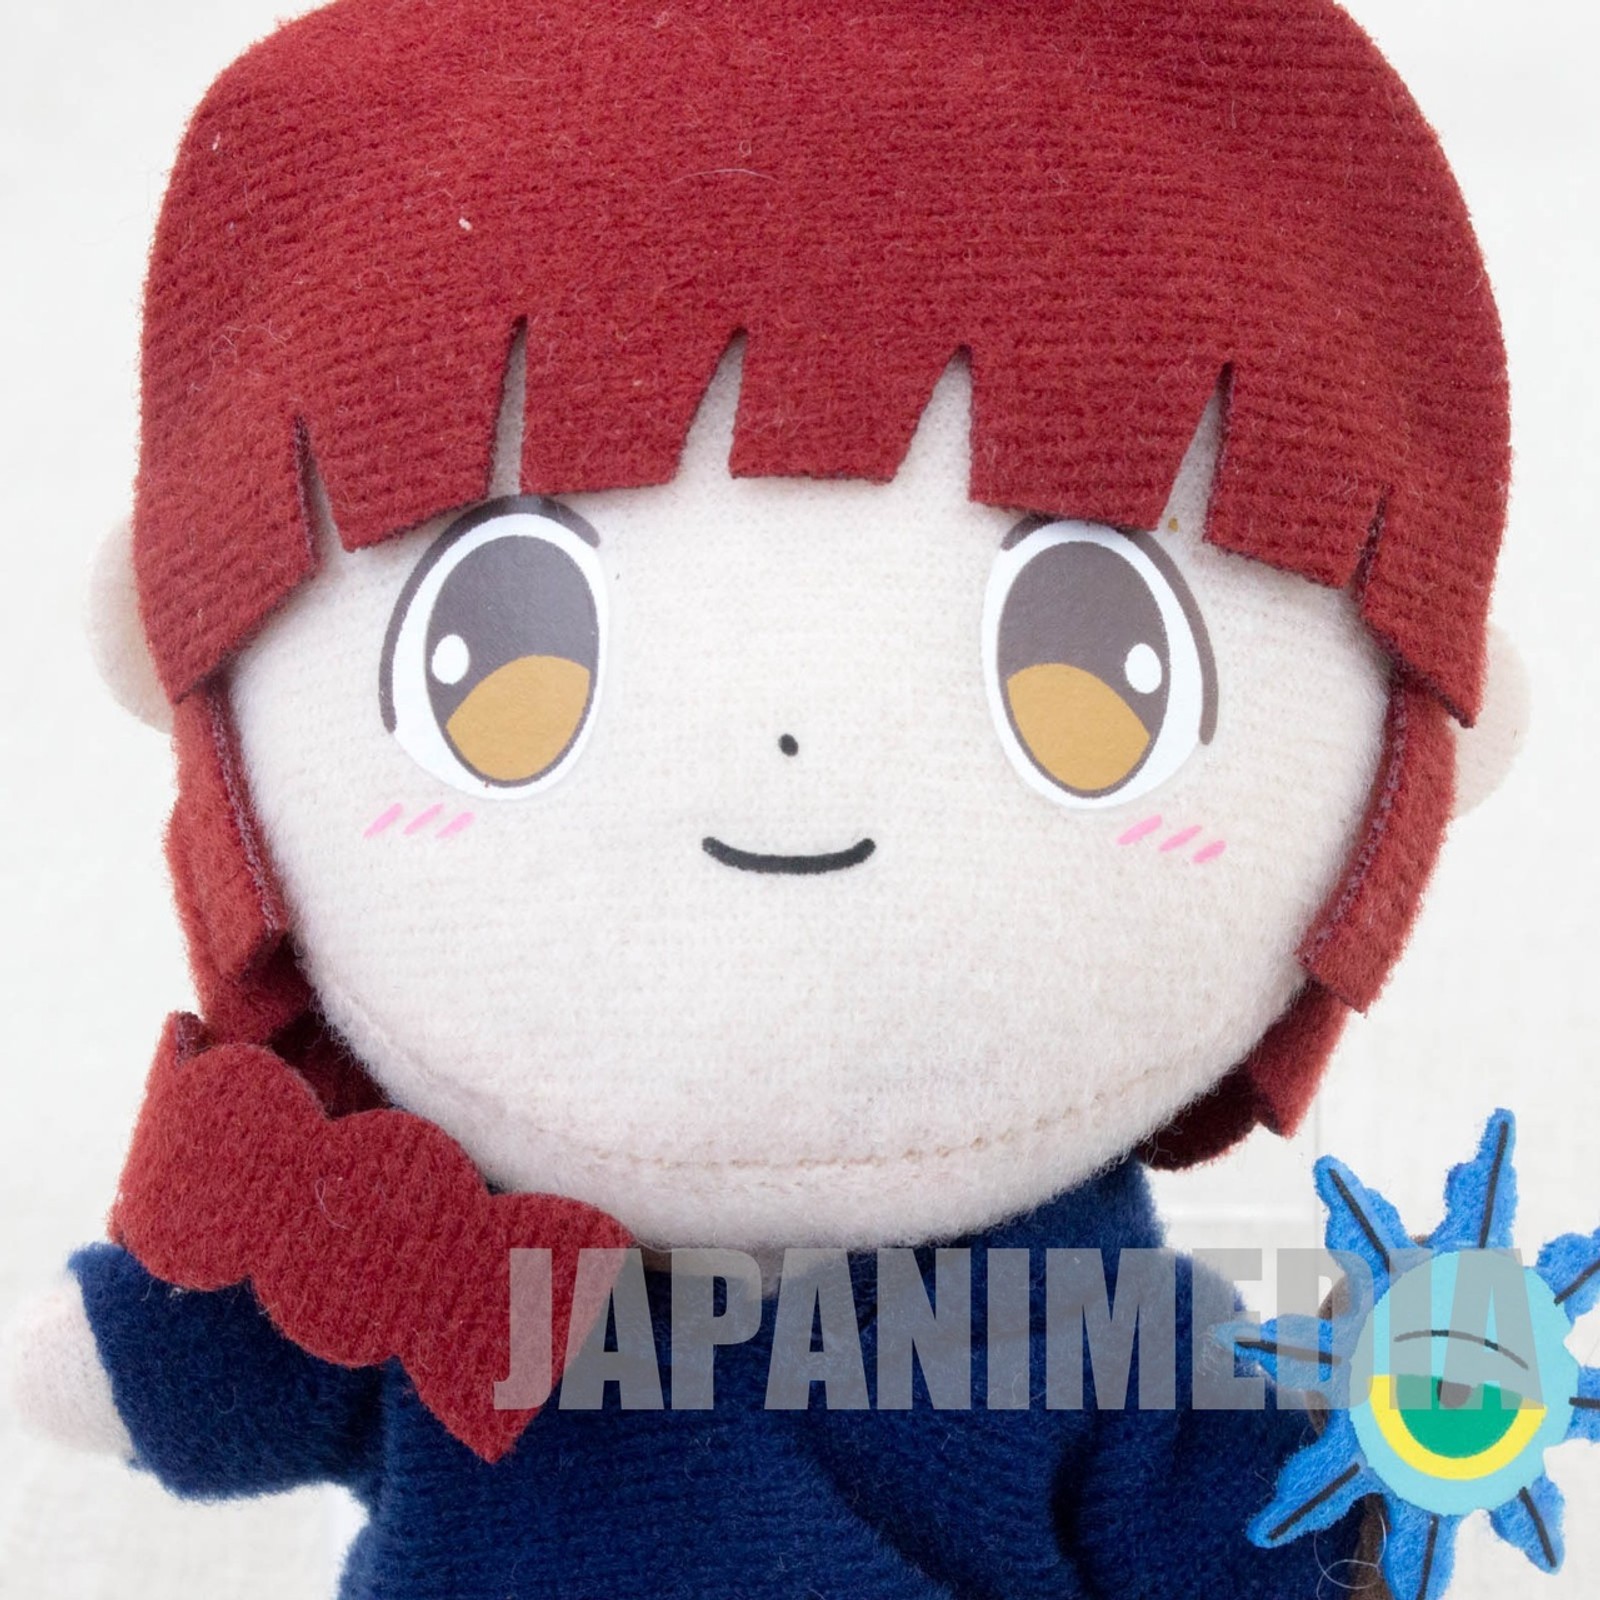 Magical Circle Guru Guru Kukuri Mini Plush Doll Strap JAPAN ANIME MANGA